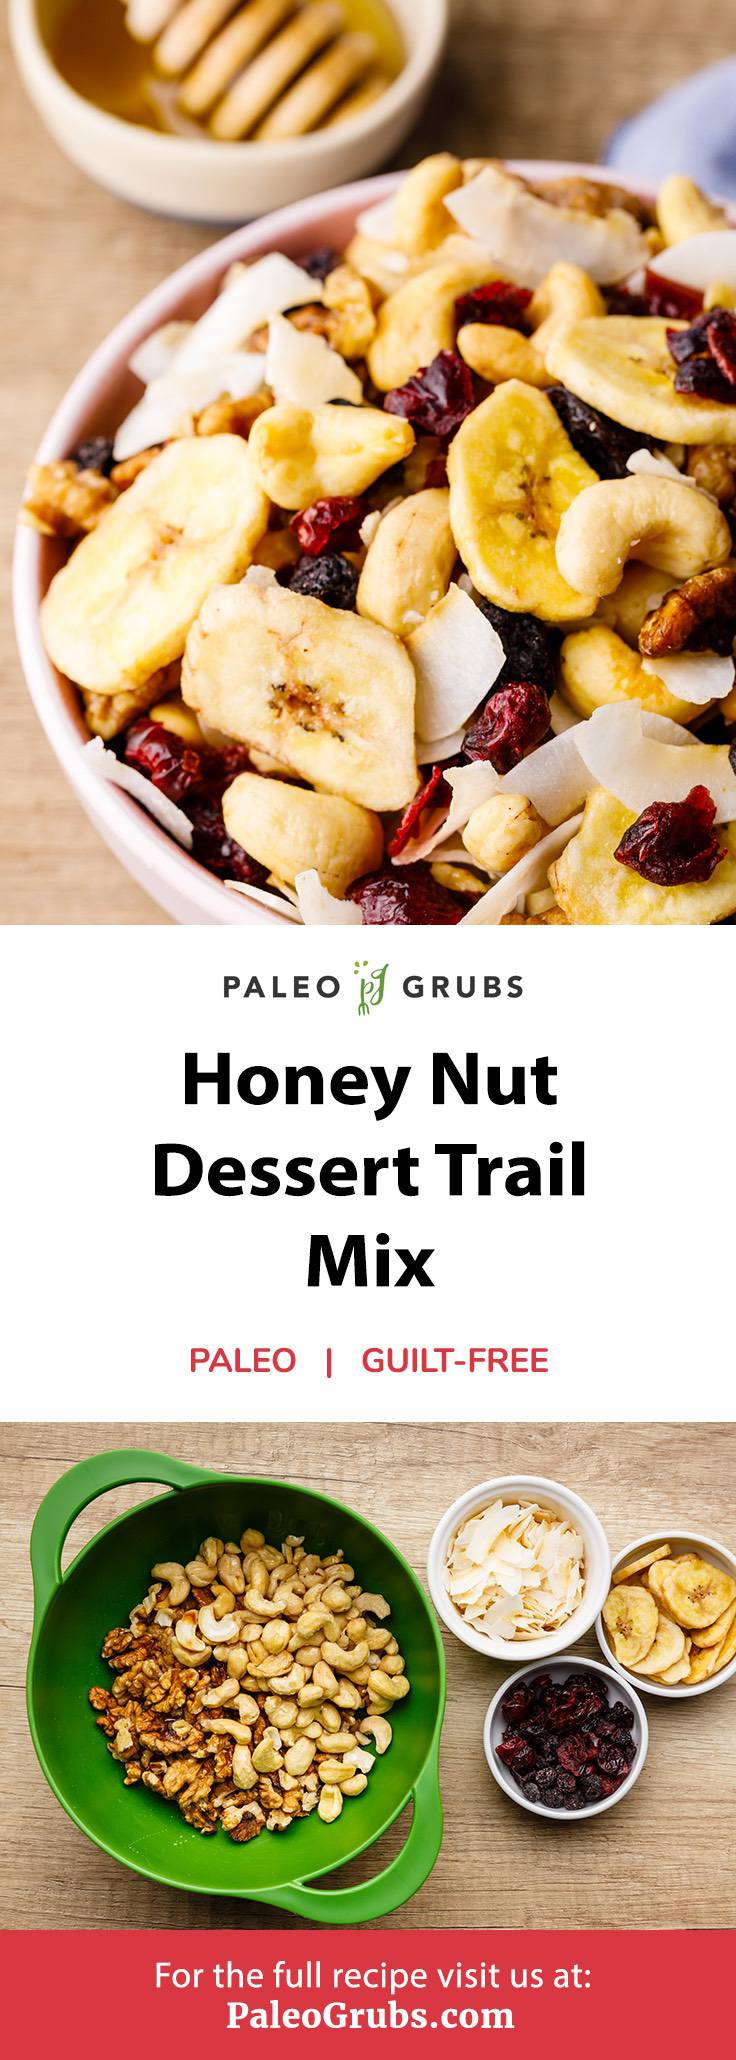 Home.fit honey-nut-dessert-trail-mix Honey Nut Dessert Trail Mix (Healthy and Nourishing)